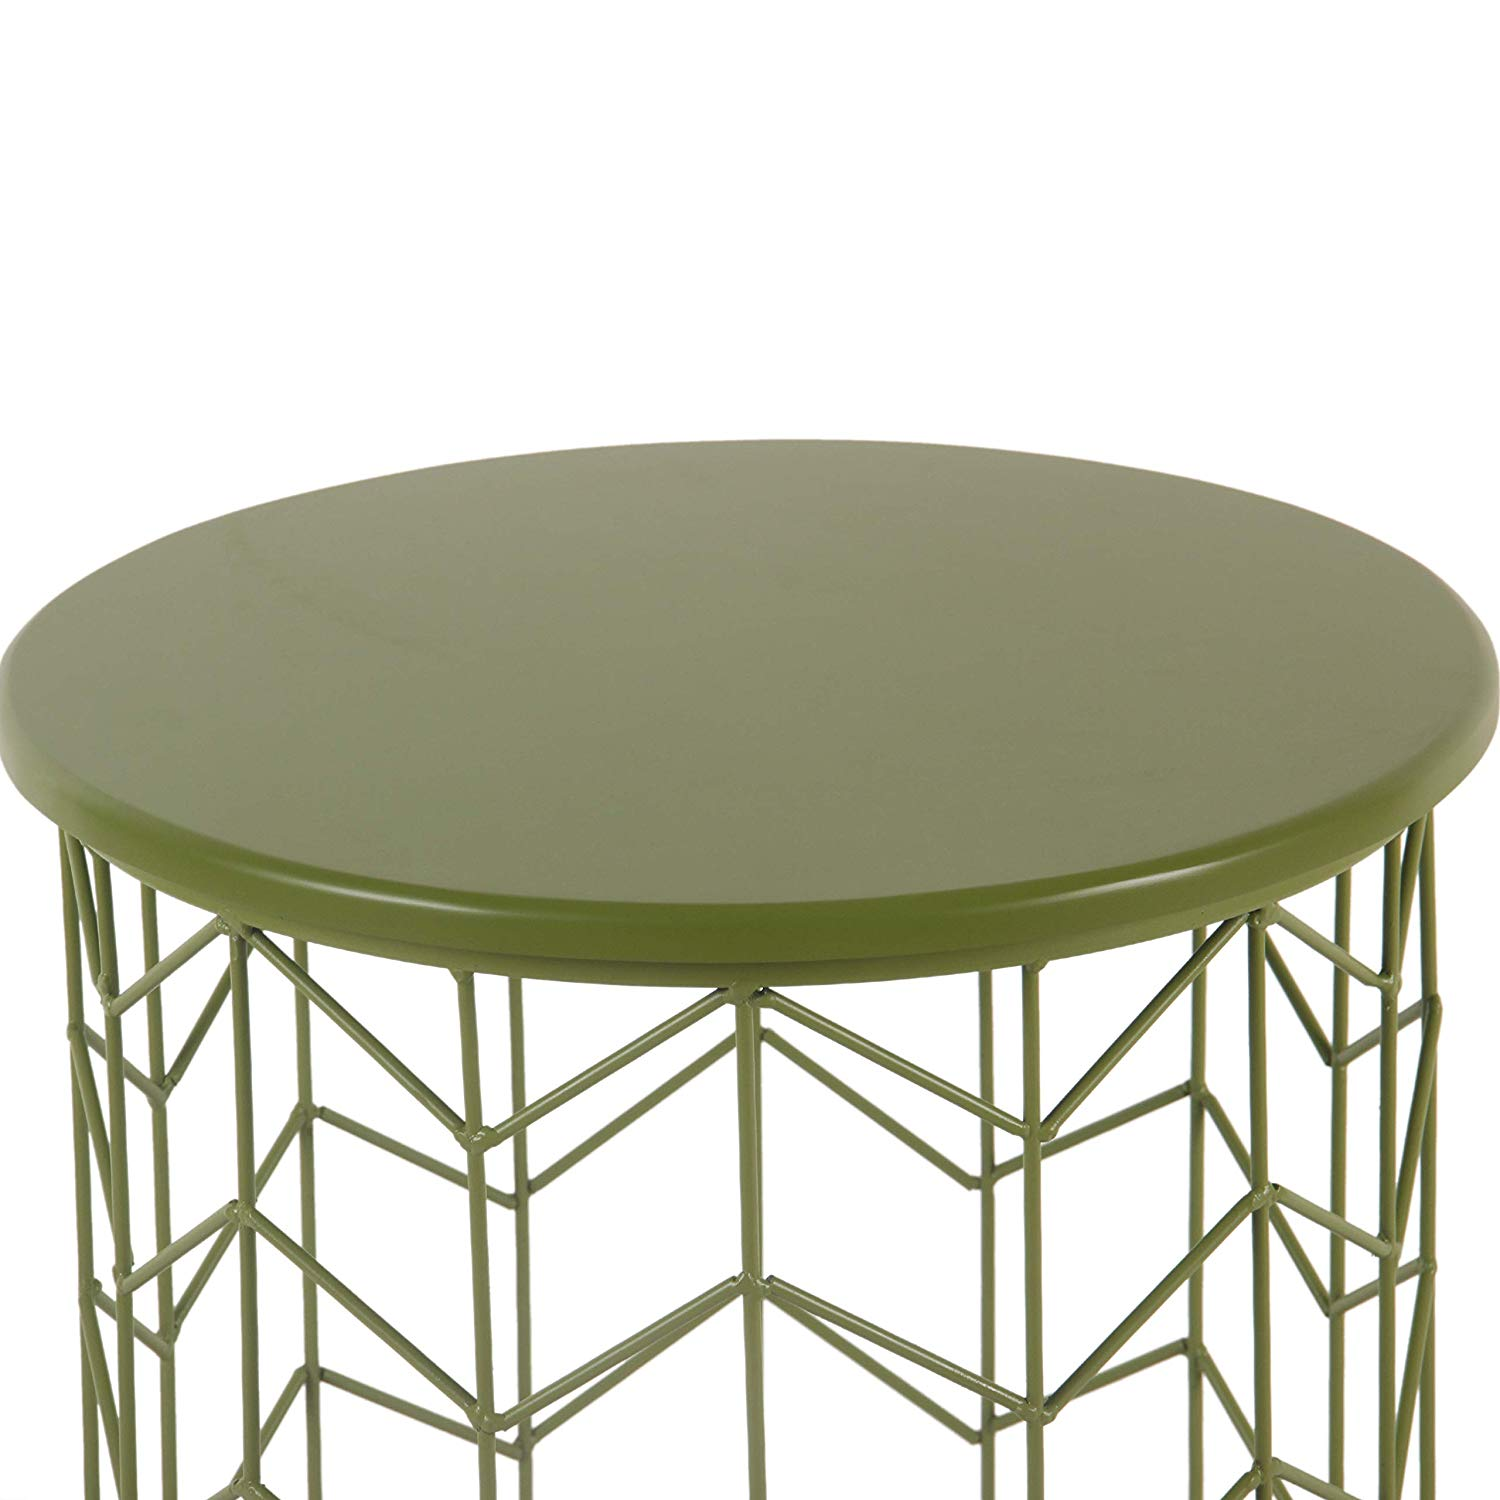 homepop modern green metal accent table kitchen dining storage trunk coffee tall round bar and chairs cube tables ikea centerpiece ideas for home ceramic ginger jar lamps solid